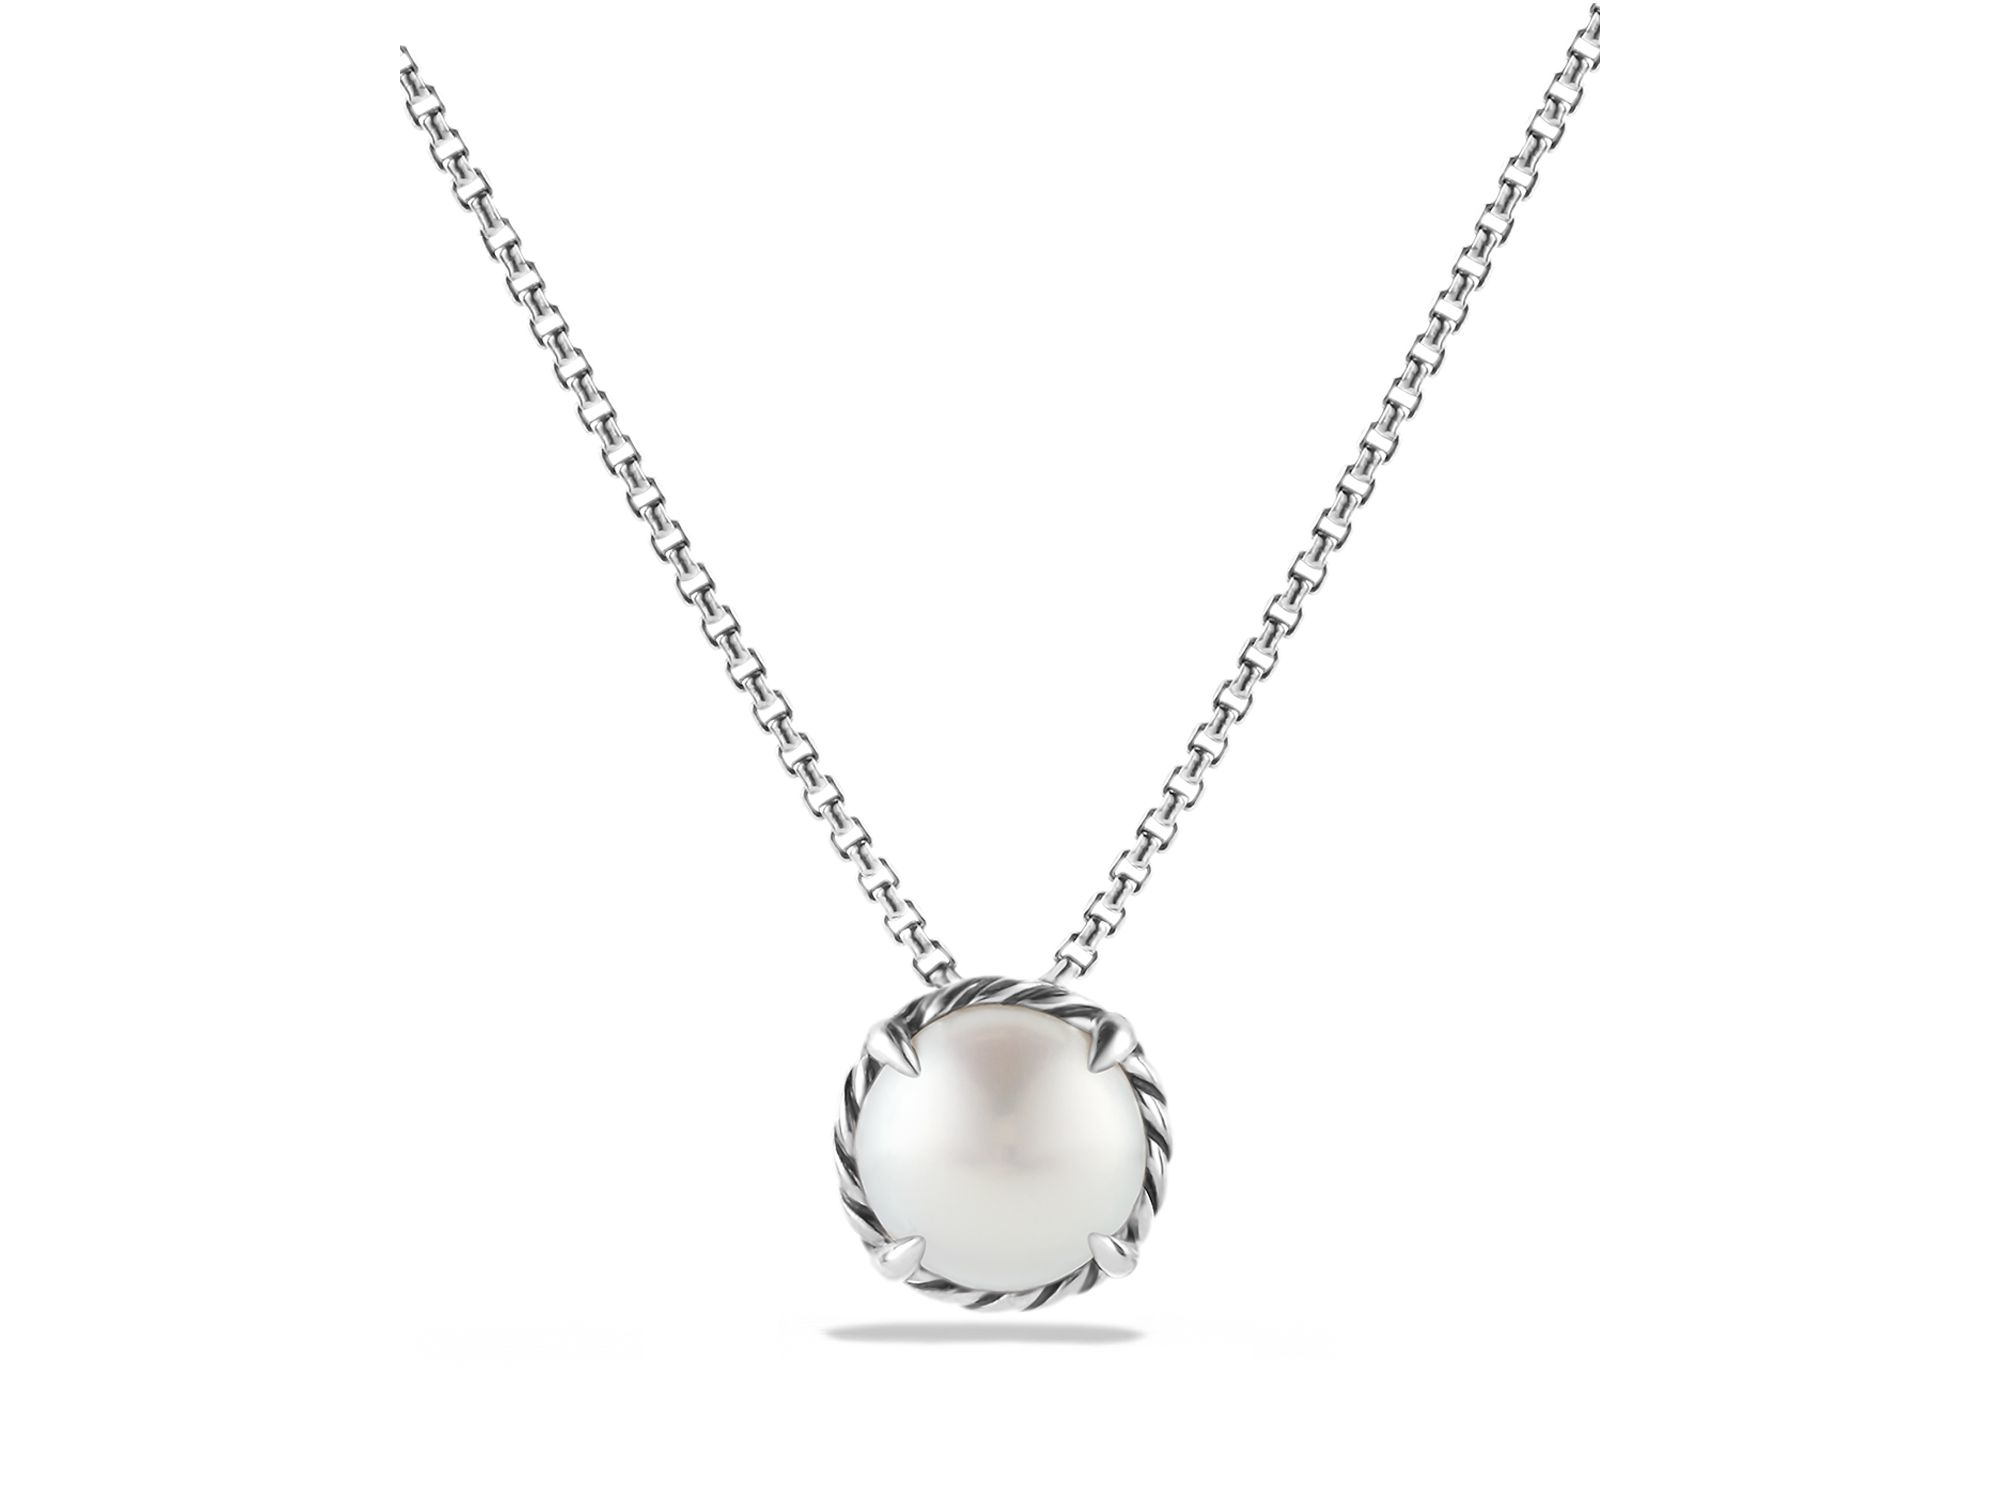 lyst david yurman chatelaine pendant necklace with pearl